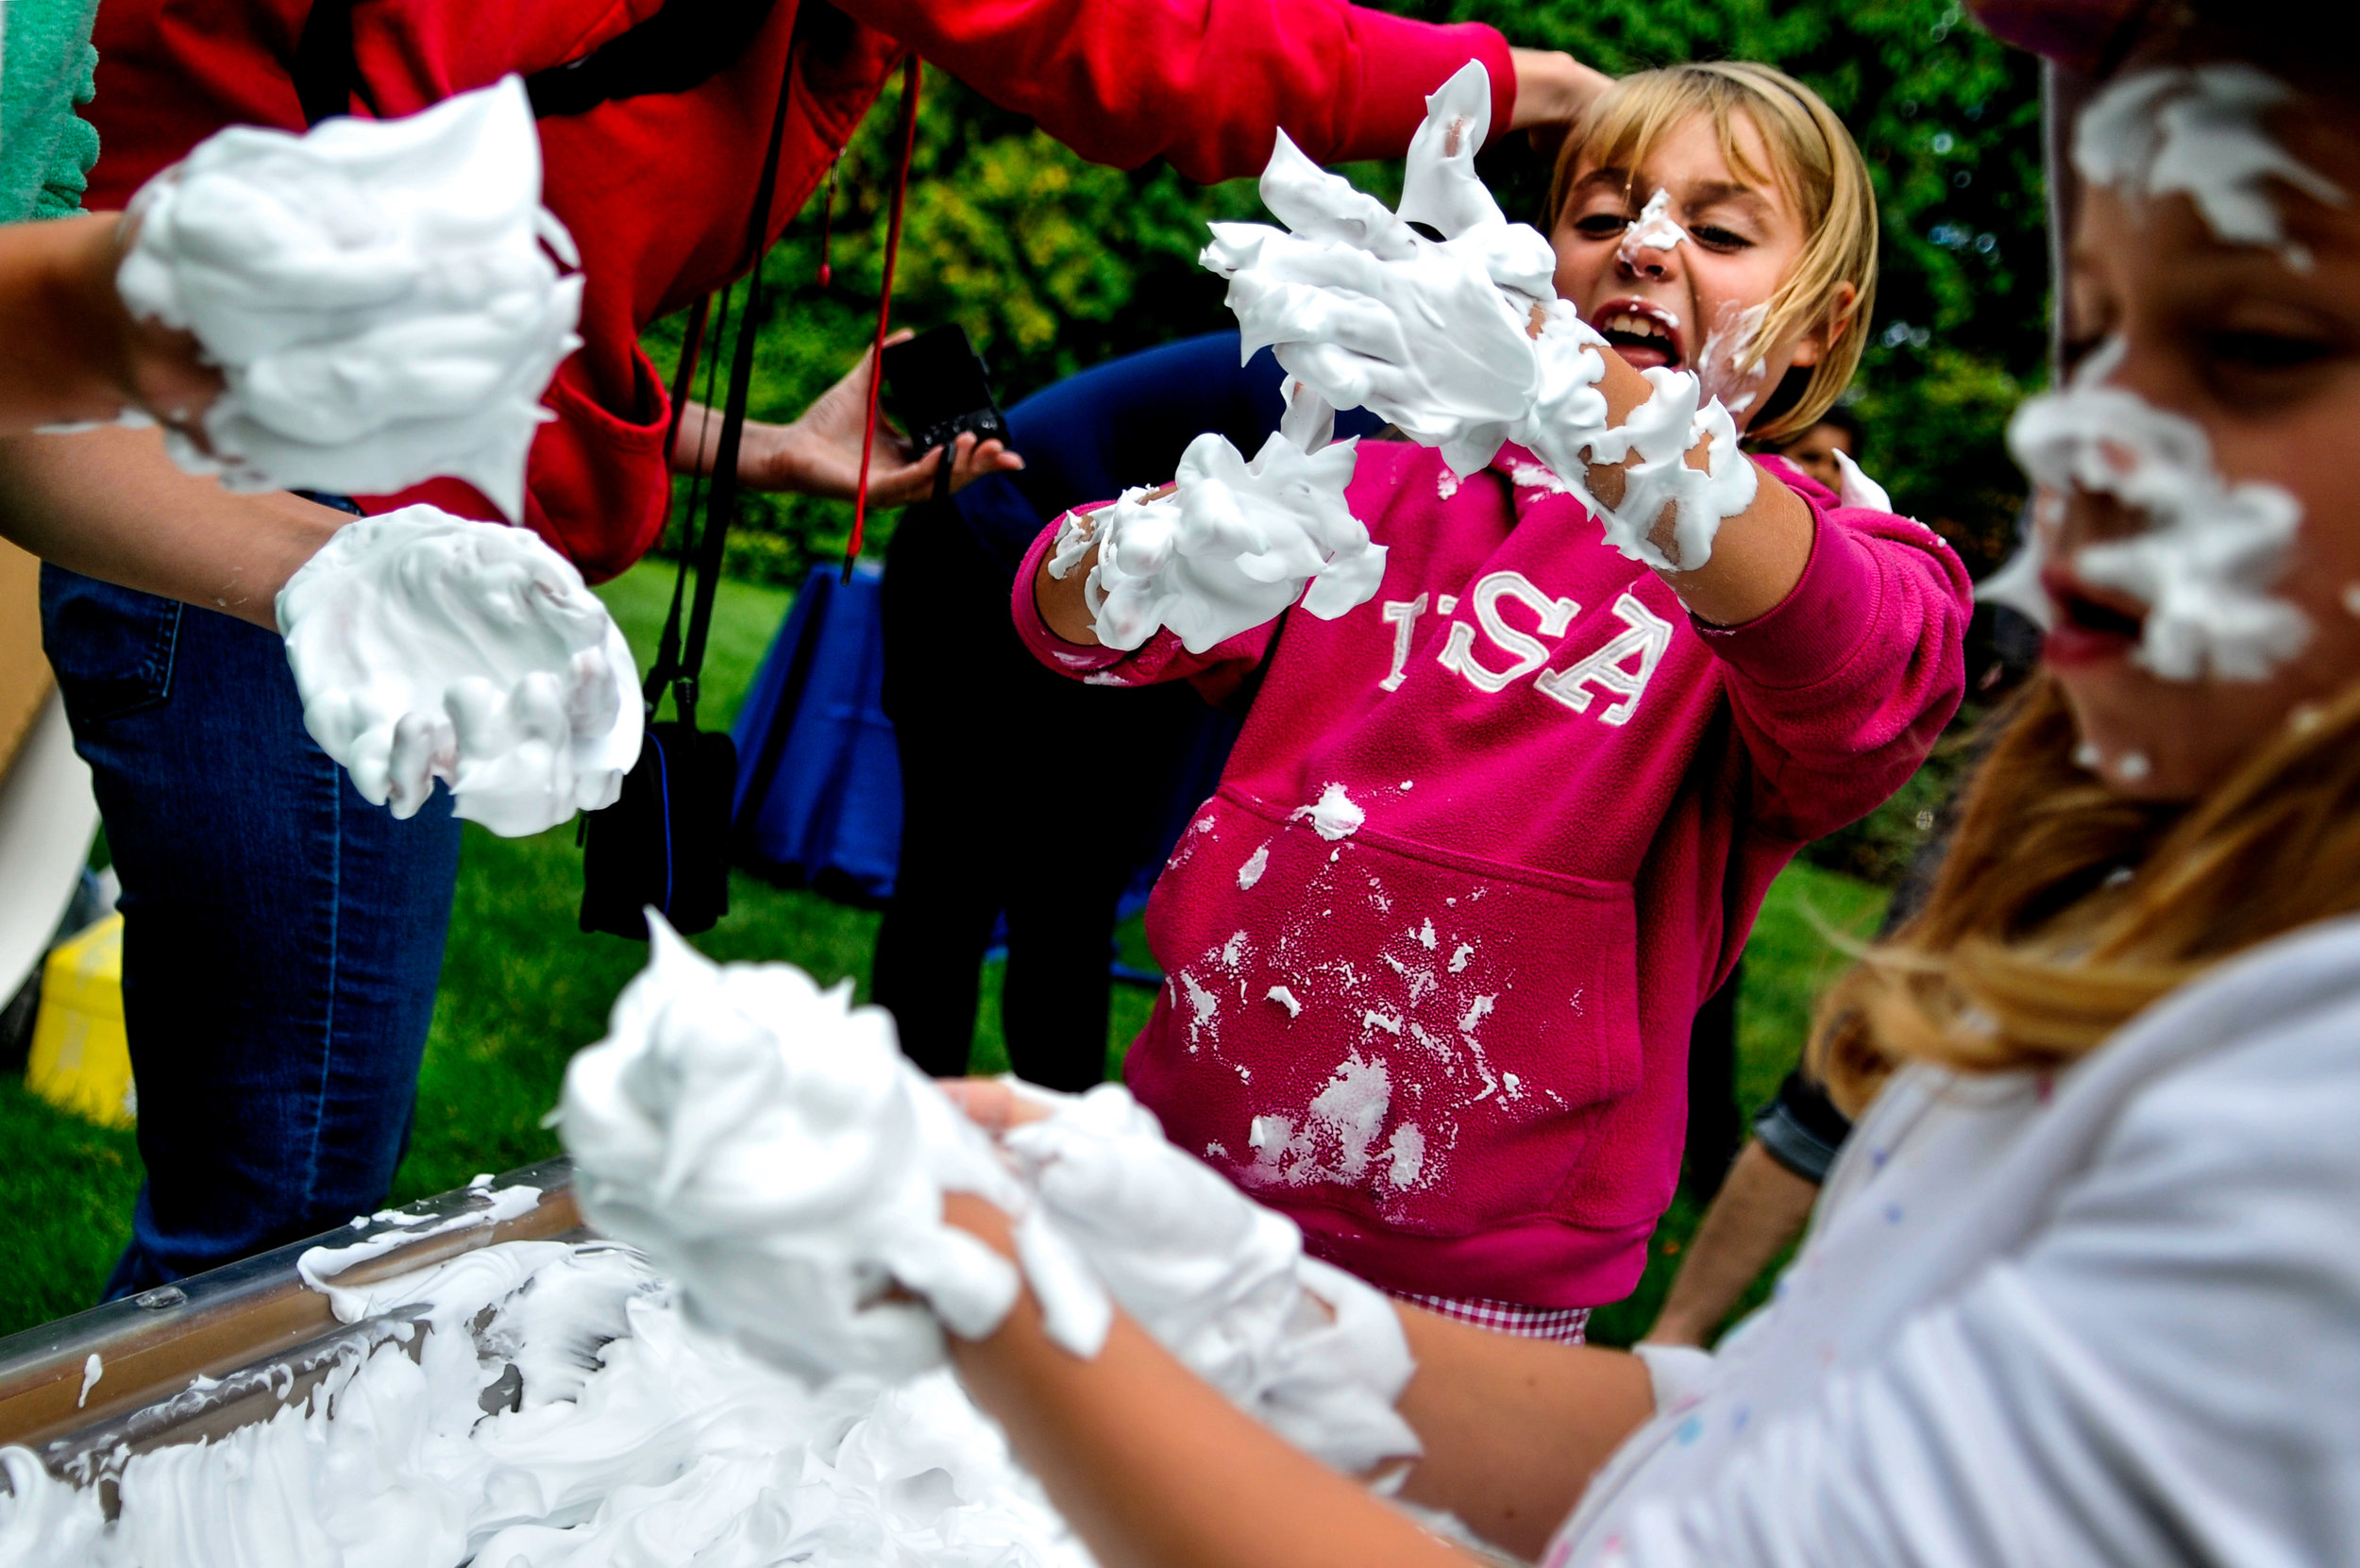 Anna Masen, 9, of Troy, plays in a box of shaving cream with her sisters during the 15th annual Fall Harvest Festival on Saturday, Sept. 24, 2016 at Applewood Estate in Flint.